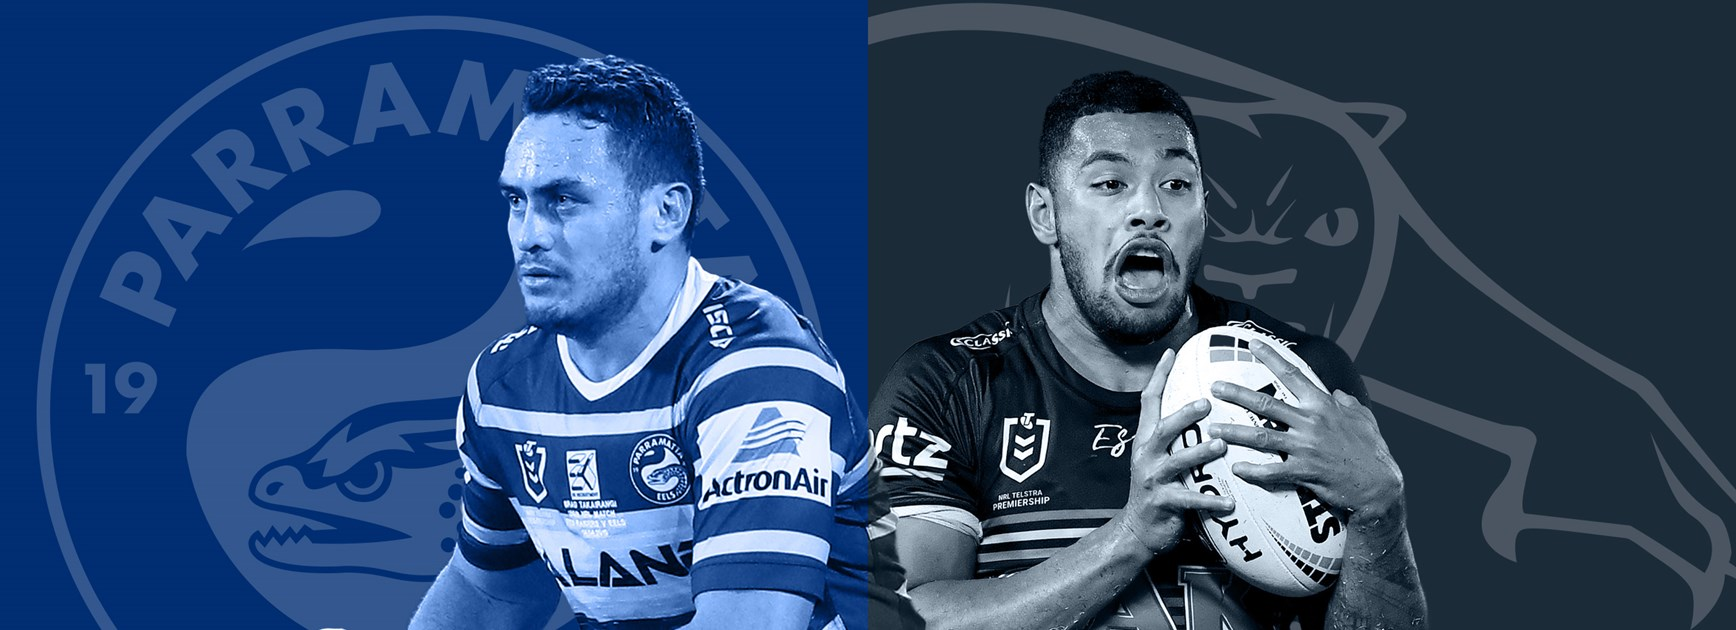 Match Preview: Eels v Panthers, Round 11